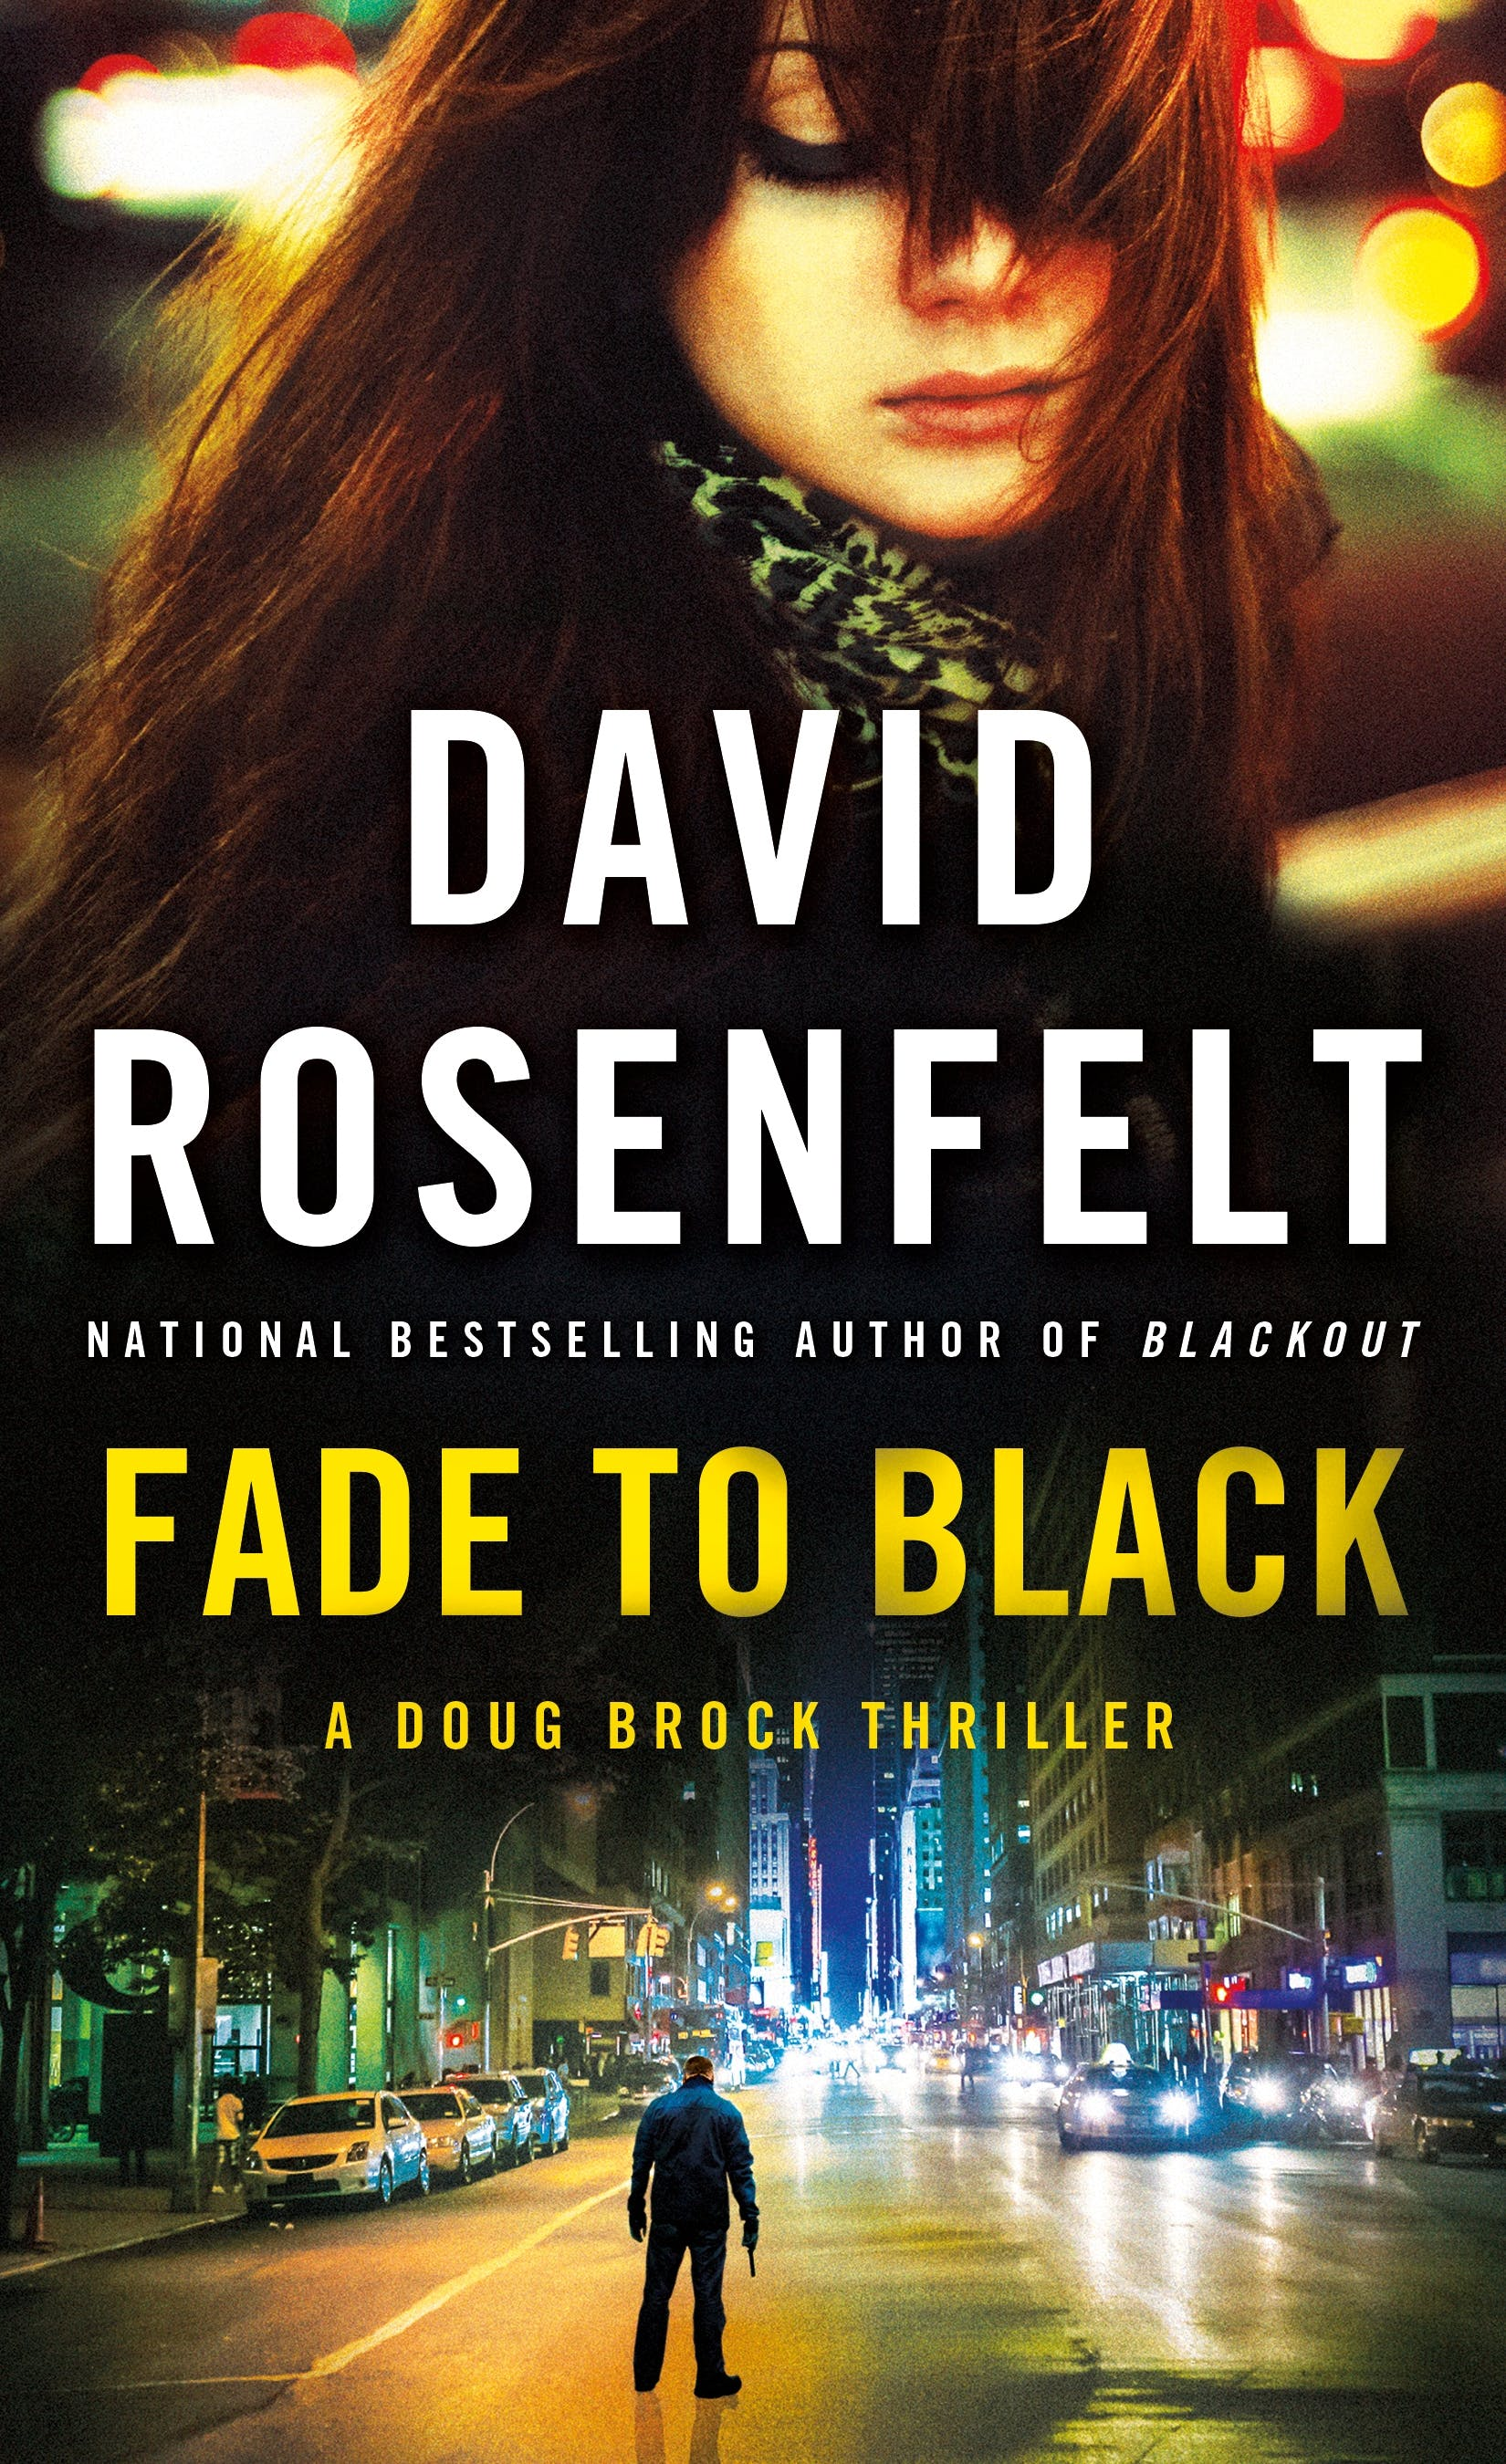 Image of Fade to Black